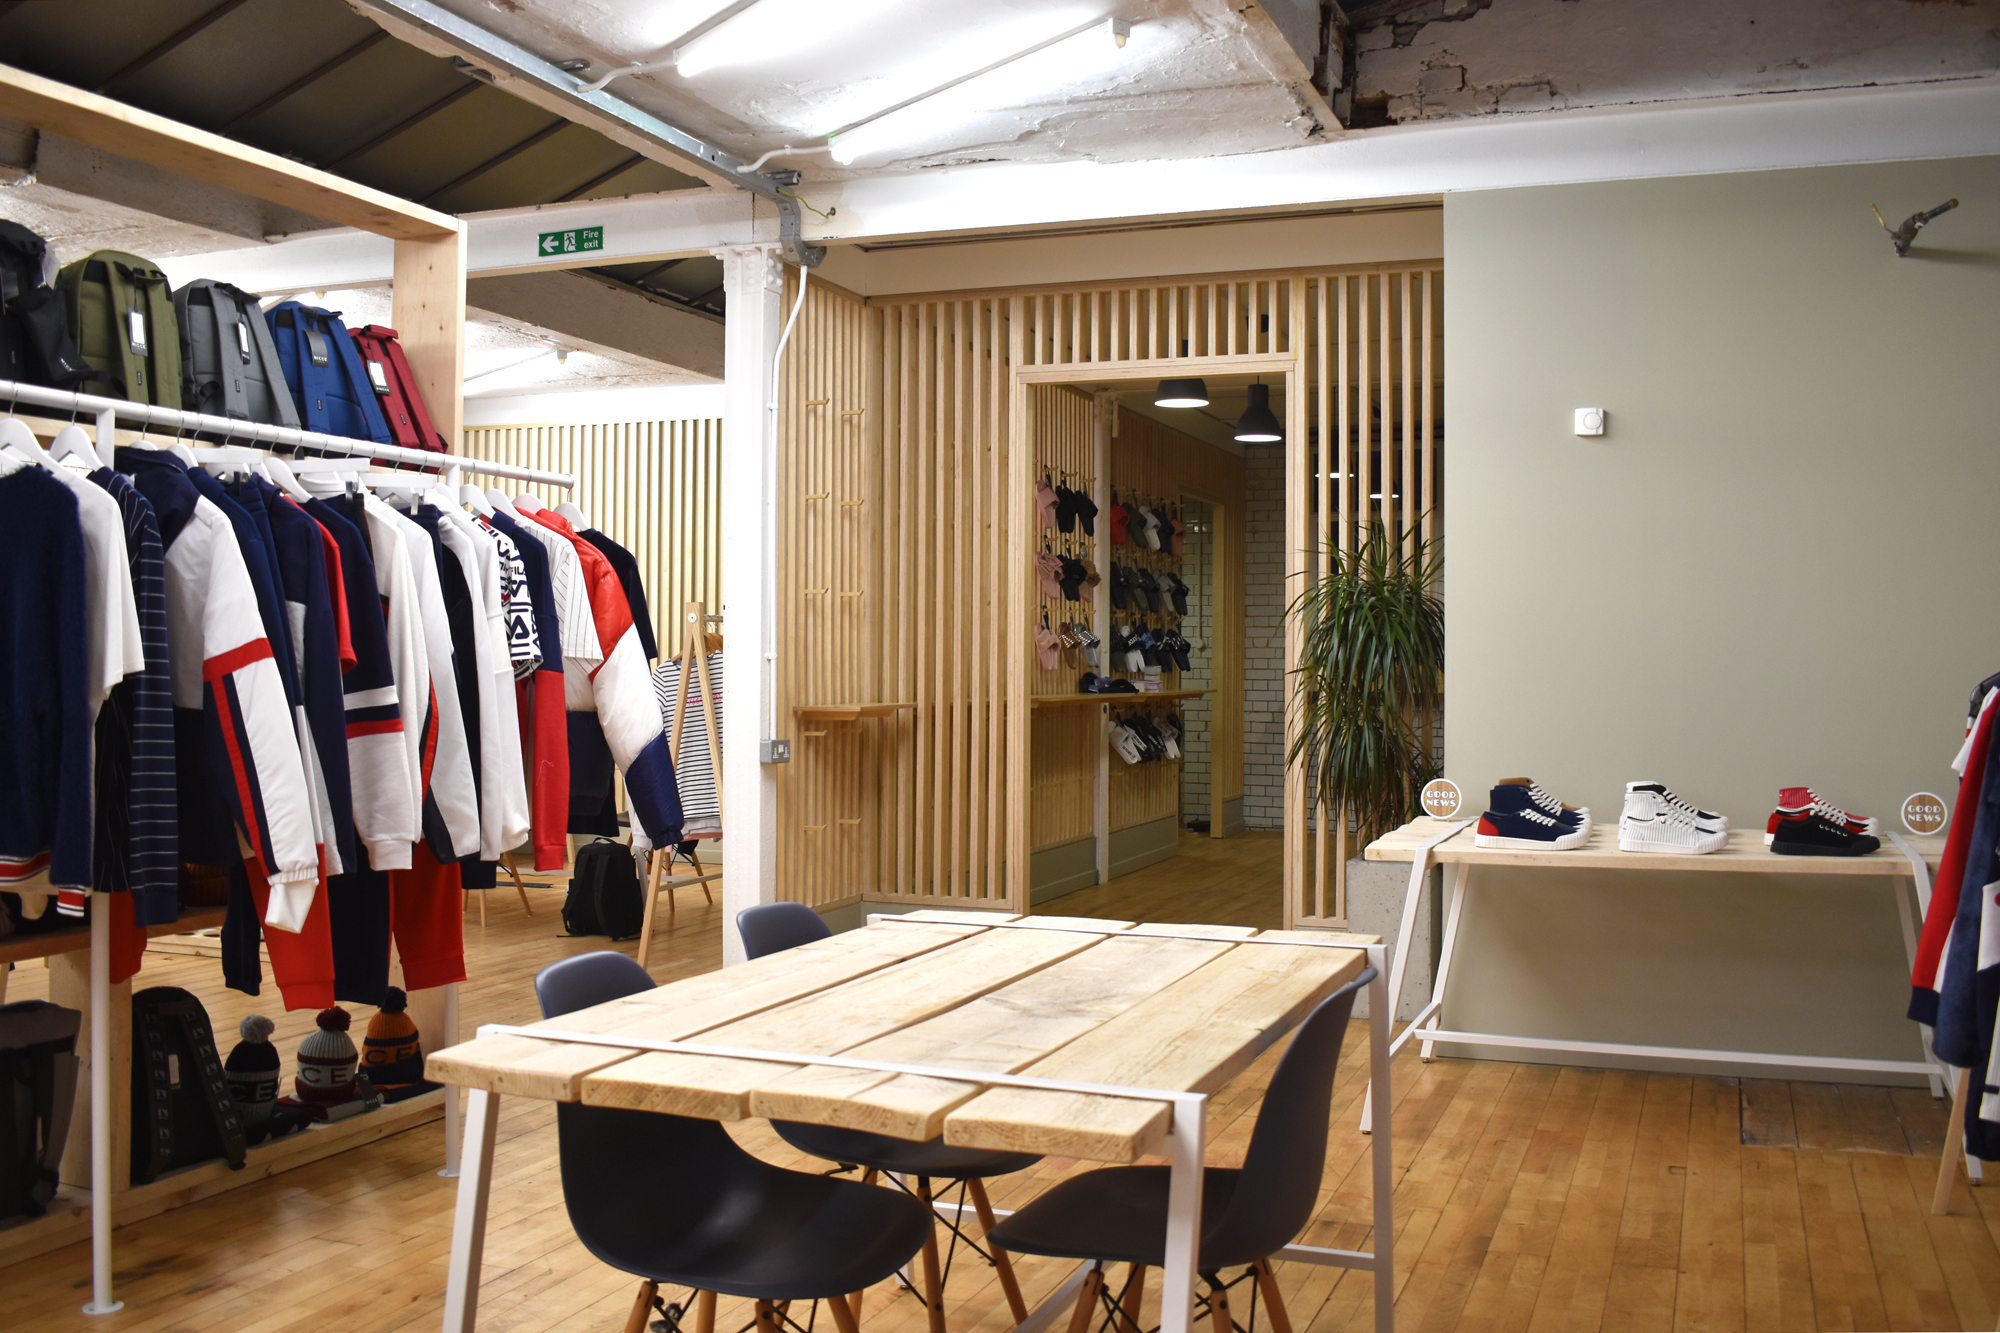 London - Just ConsultanciesHume StudioThe Rag Factory16-18 Heneage StreetLondon, E1 5LJtel. 020 7739 7620juls@justagroup.co.ukinfo@justagroup.co.uk